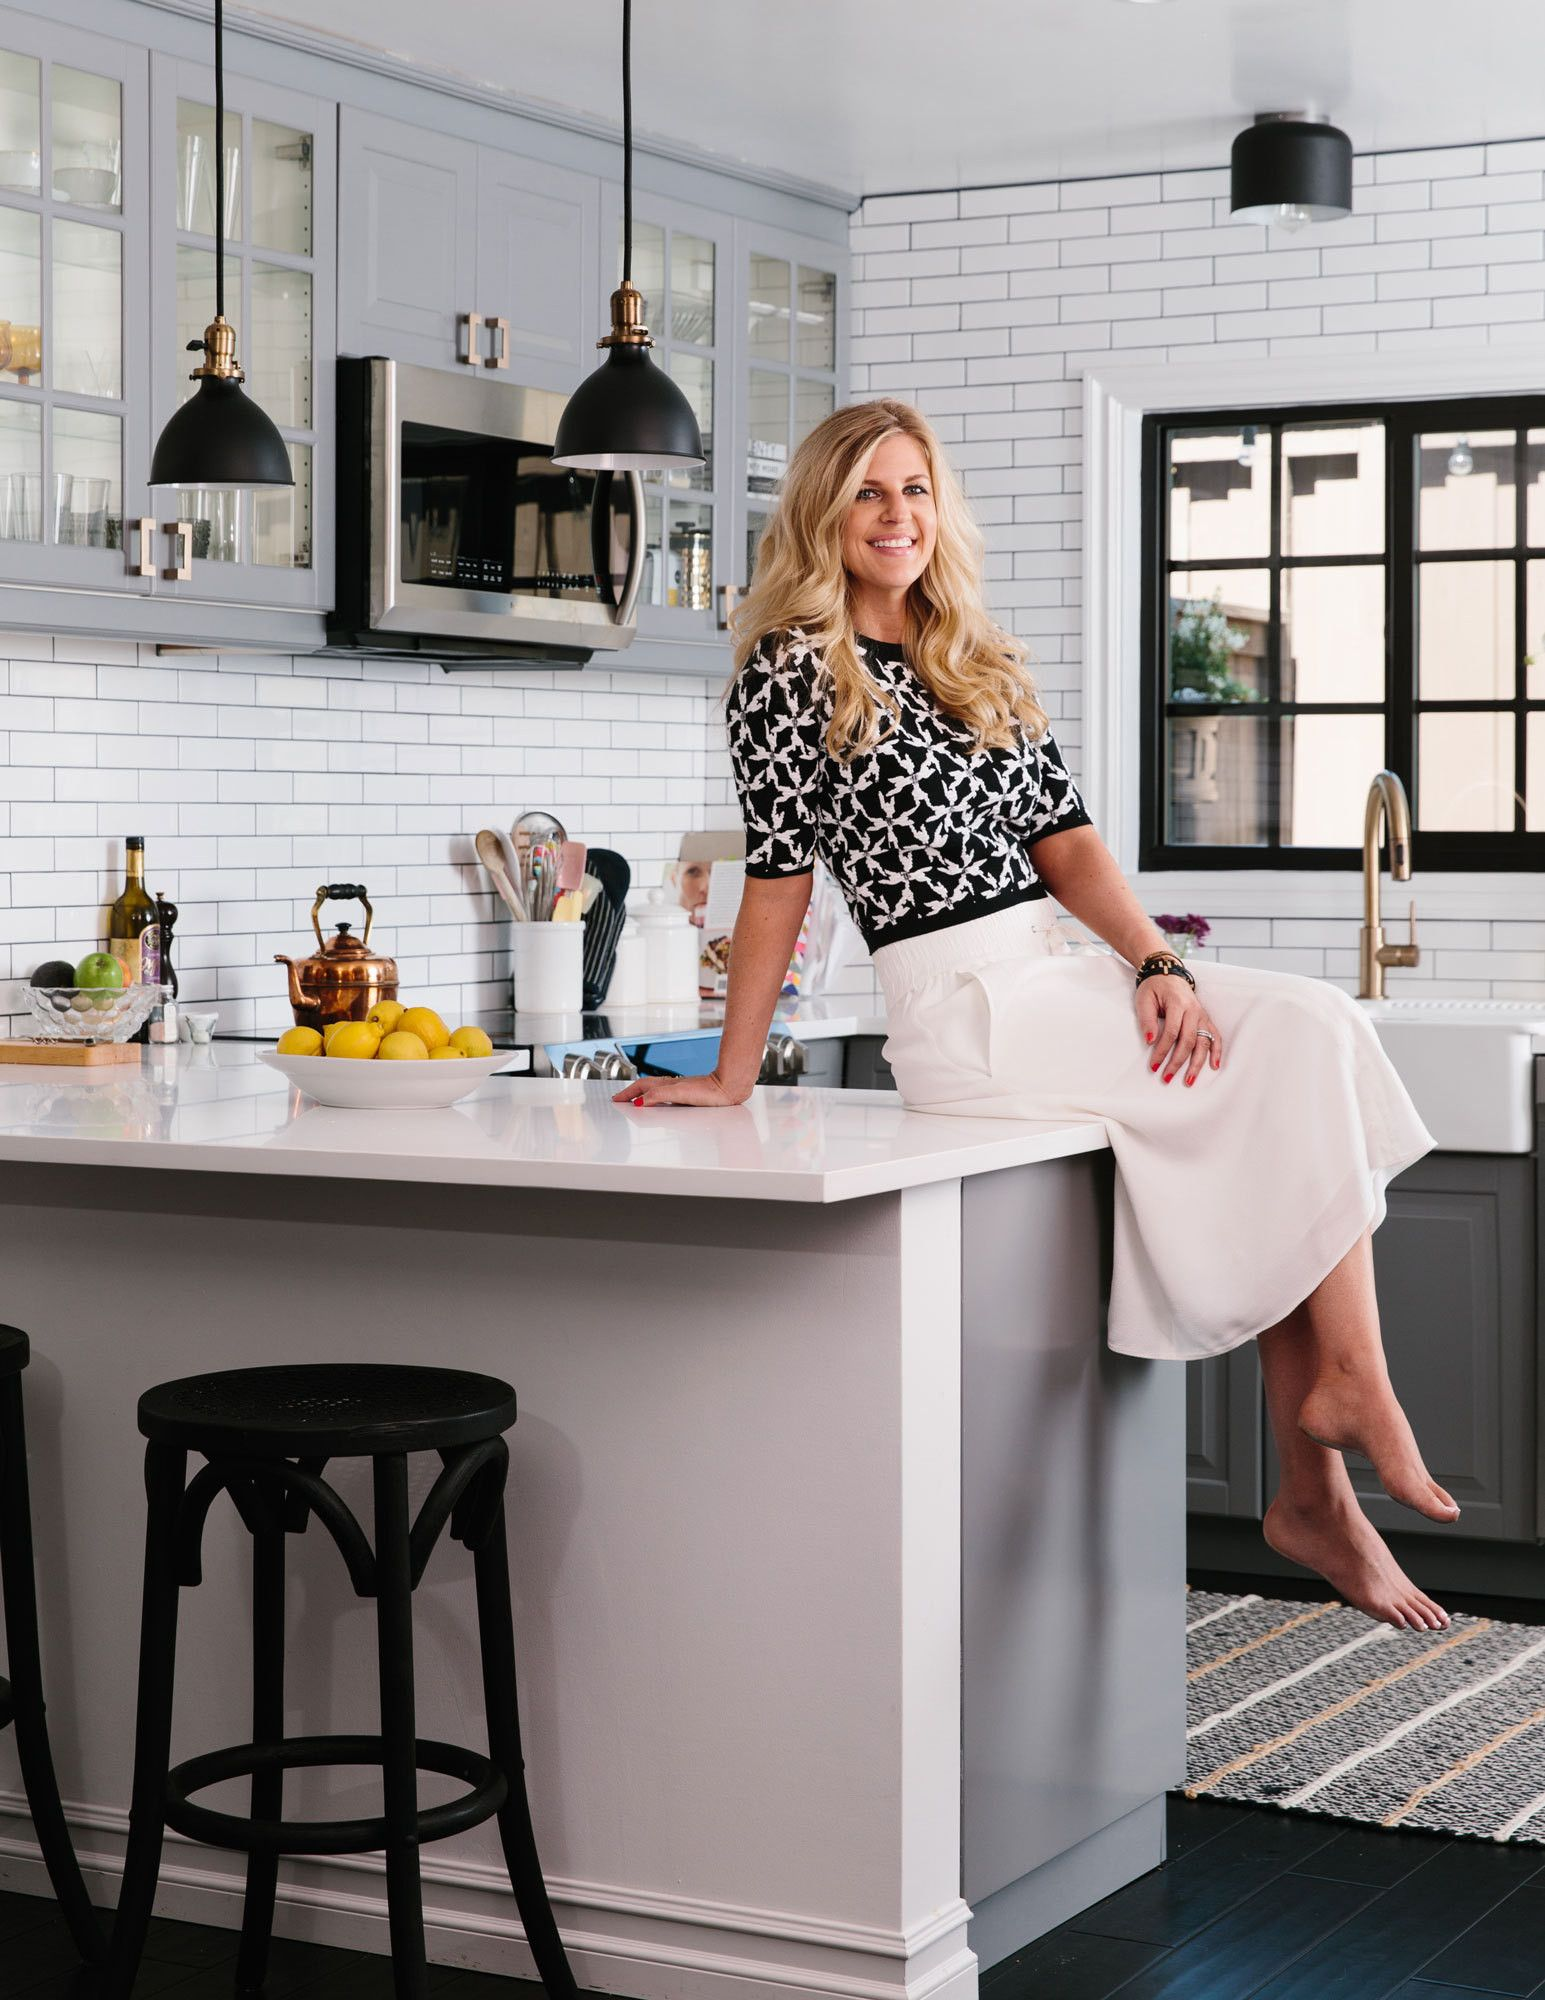 Ten tips from rundown rental to chic starter home matte black schoneveld shows off her customized ikea kitchen which she upgraded with matte black light fixtures arubaitofo Image collections